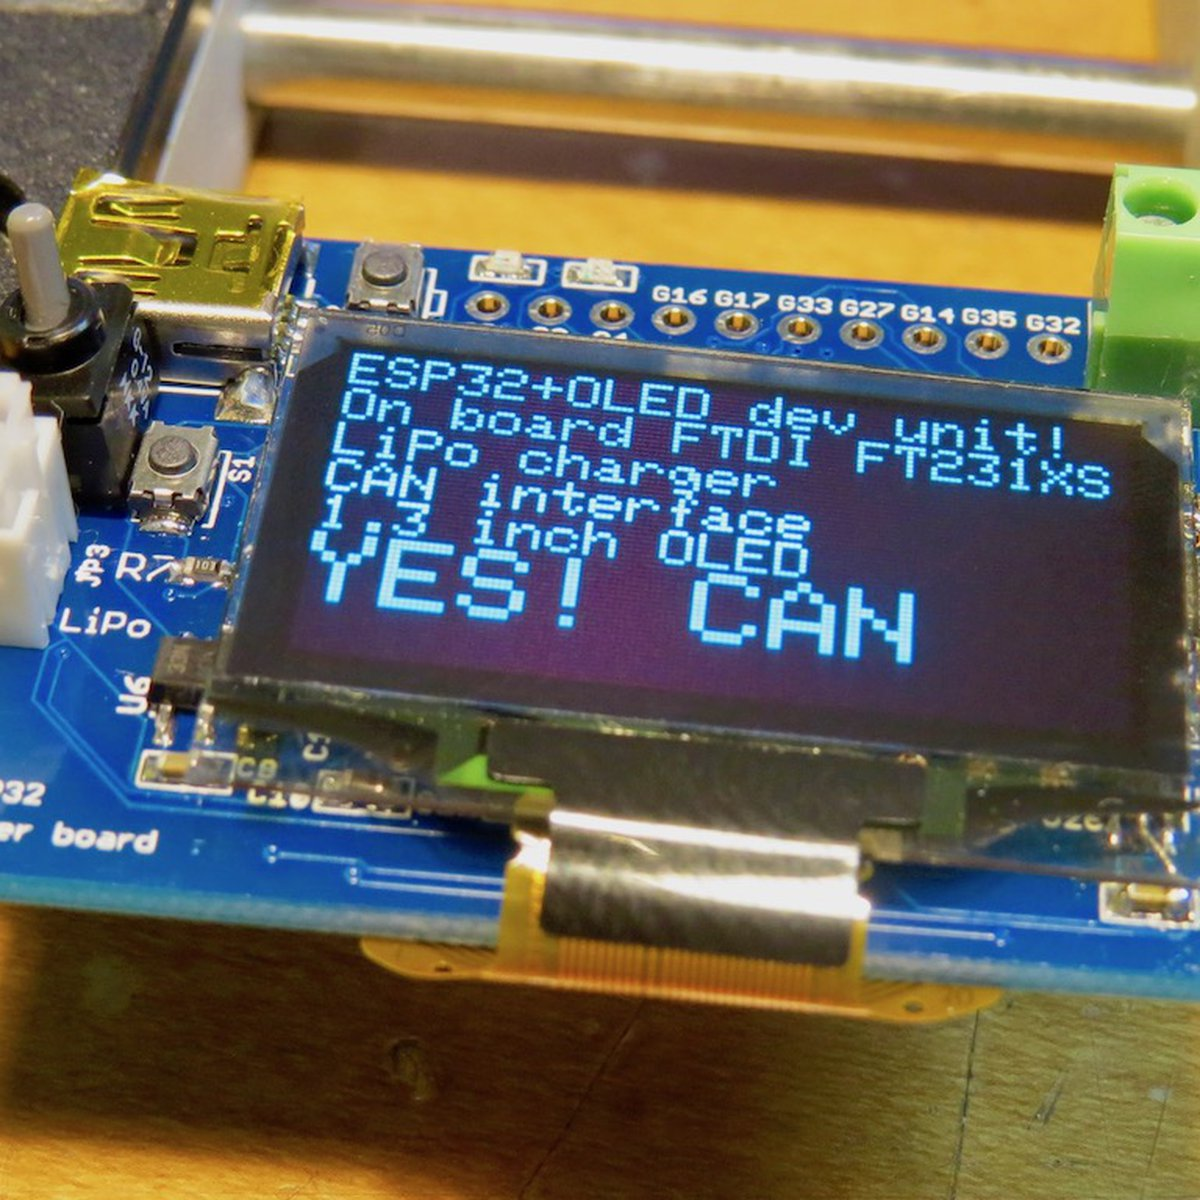 ESP32 CAN CAN board!! from microwavemont on Tindie